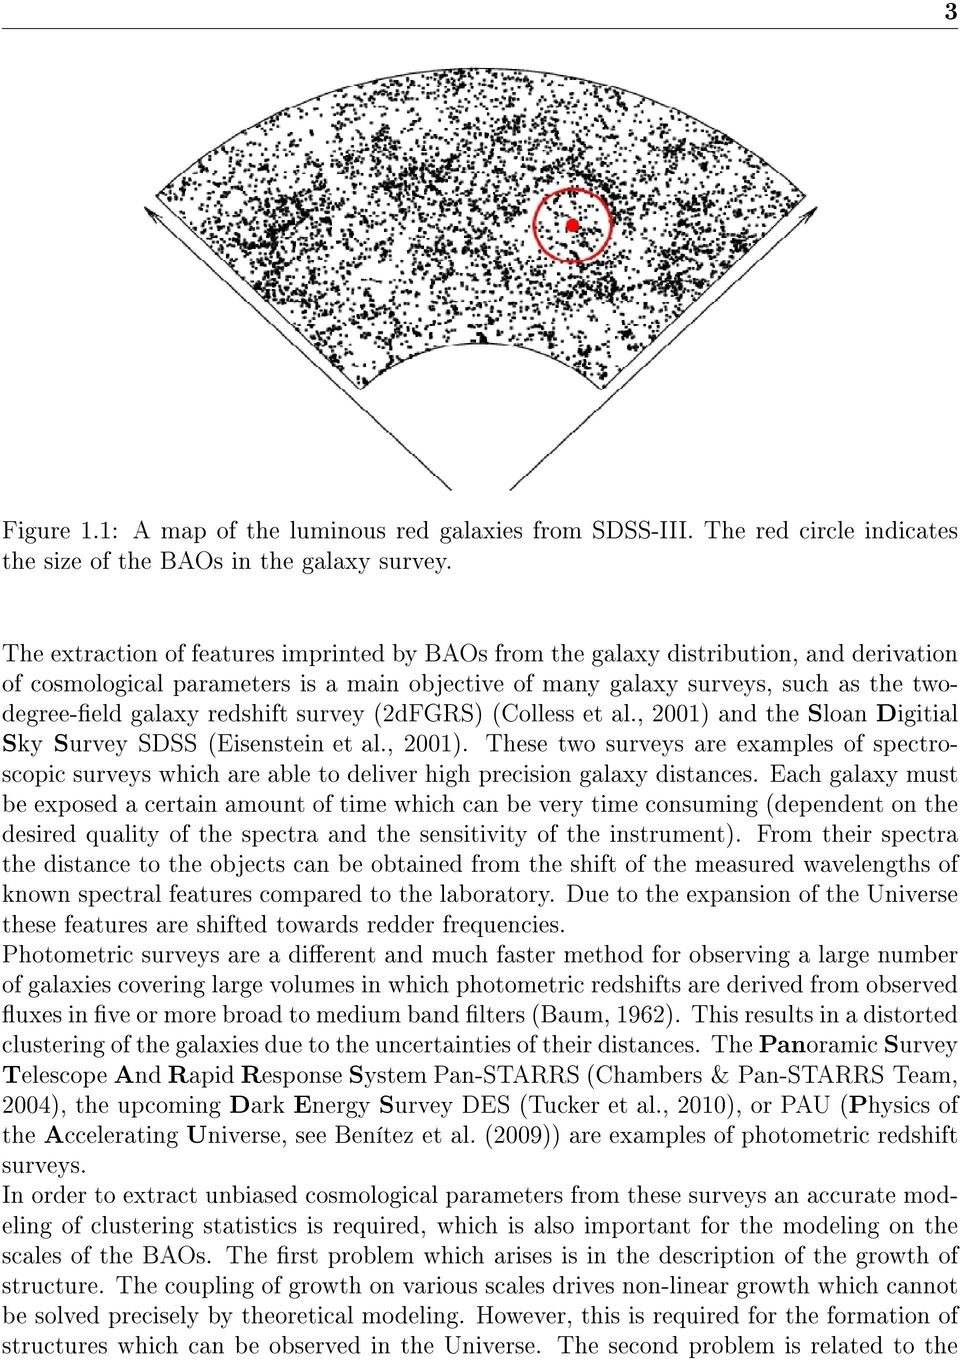 redshift survey (2dFGRS) (Colless et al., 2001) and the Sloan Digitial Sky Survey SDSS (Eisenstein et al., 2001). These two surveys are examples of spectroscopic surveys which are able to deliver high precision galaxy distances.